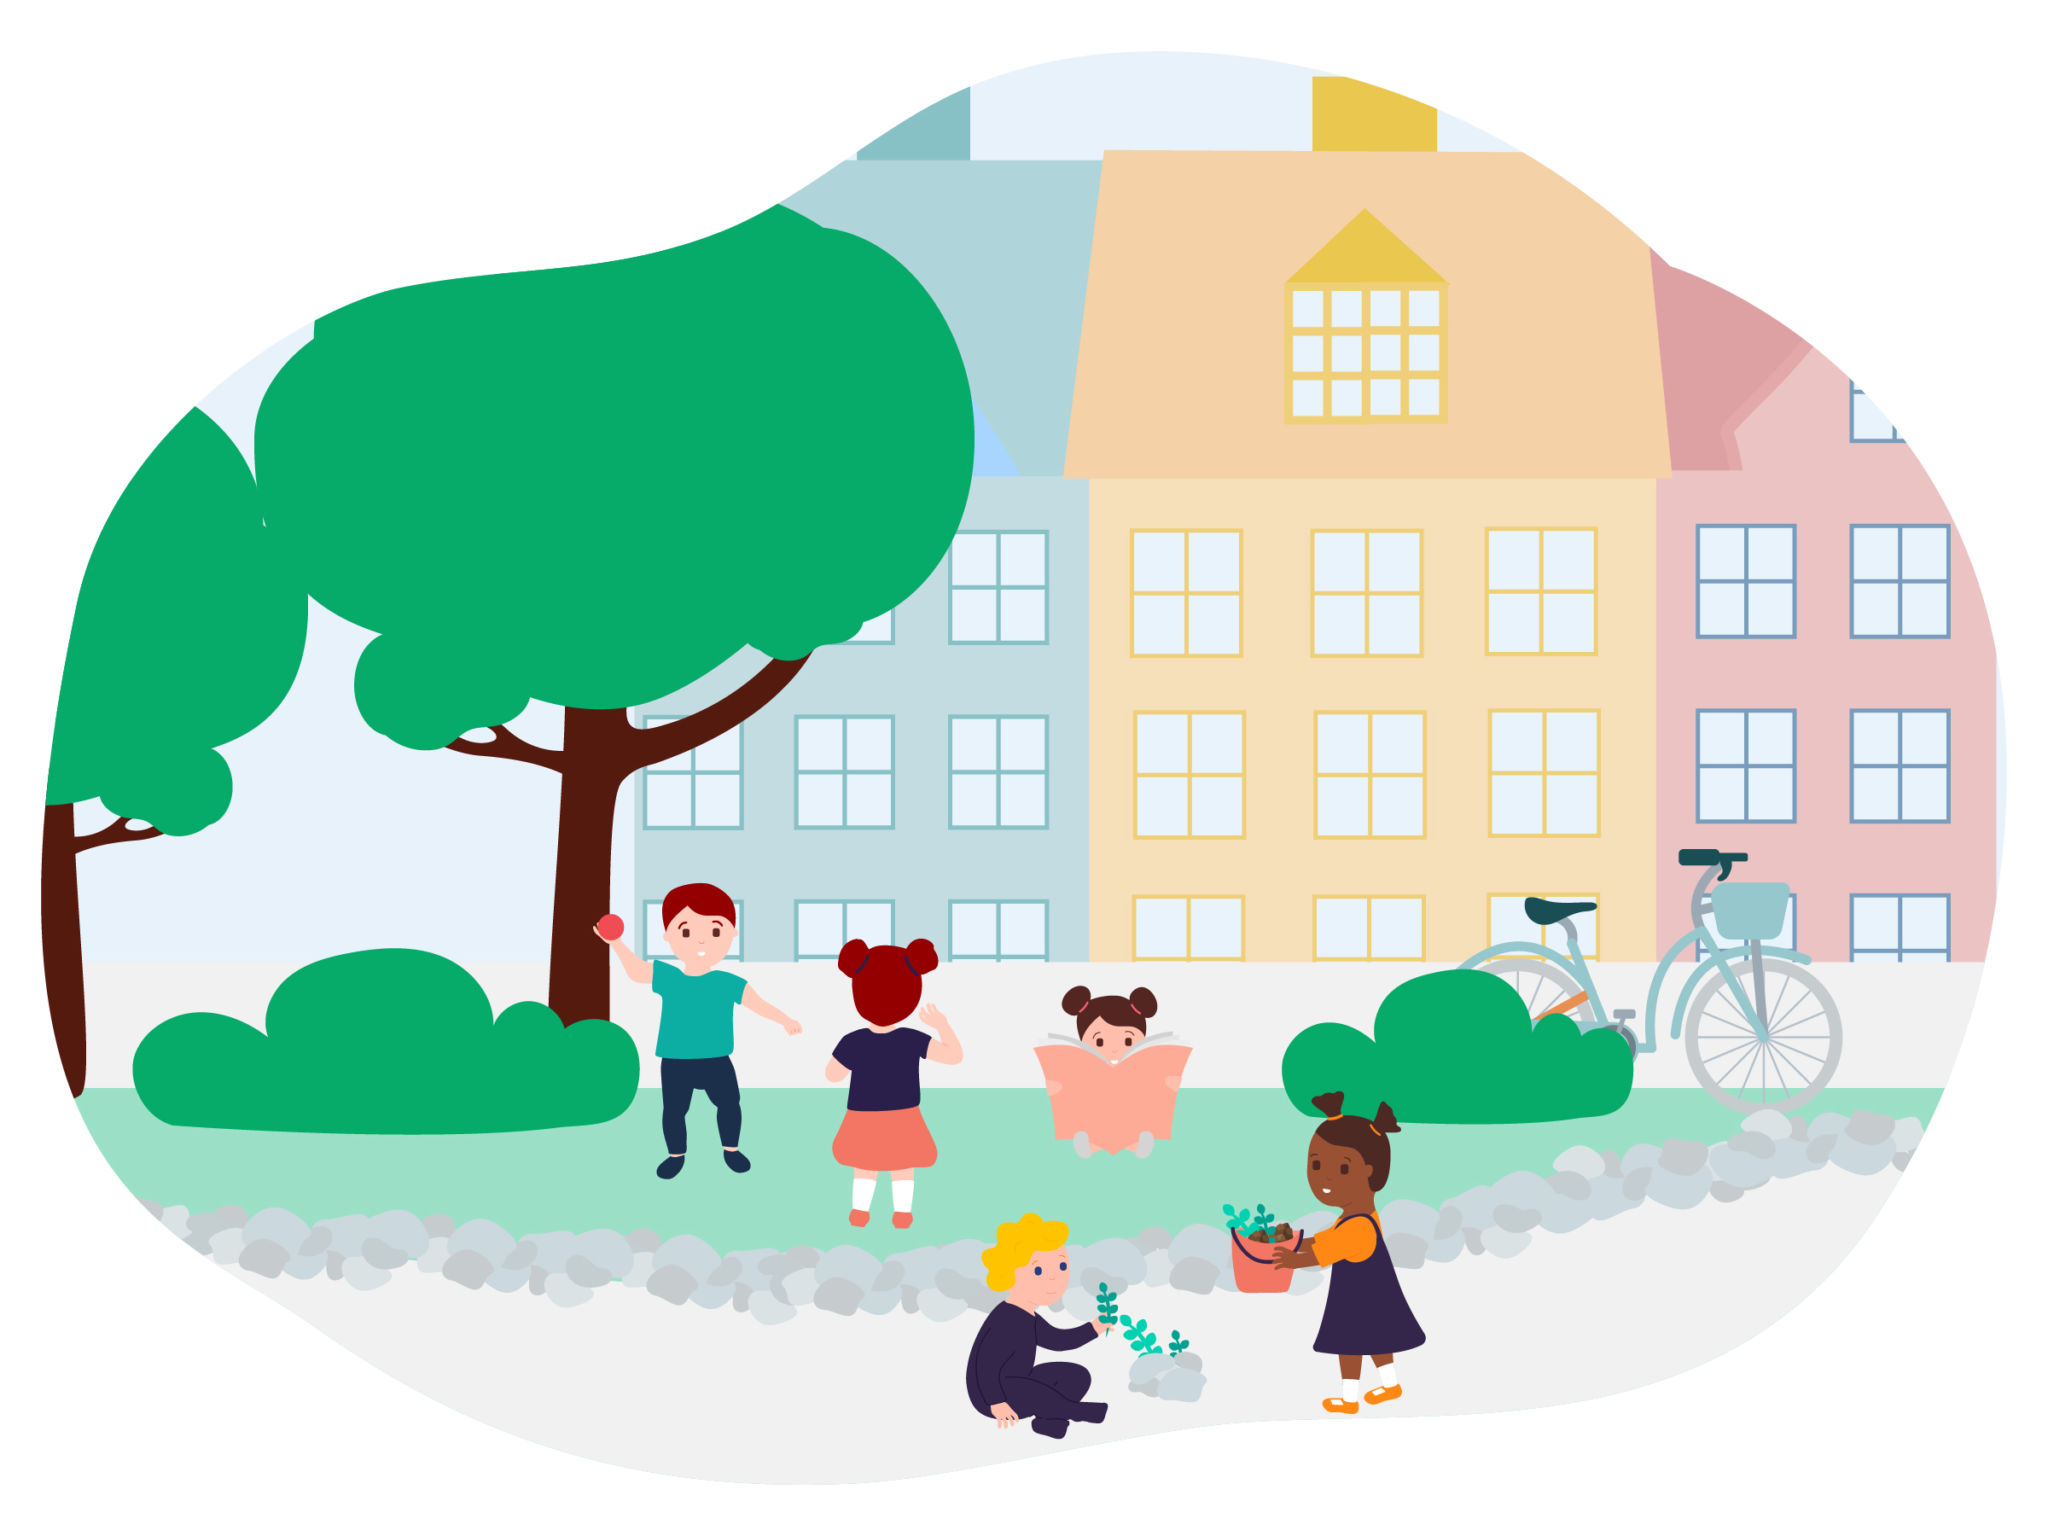 How Do Danish Child Care Settings Approach Early Outdoor Learning?